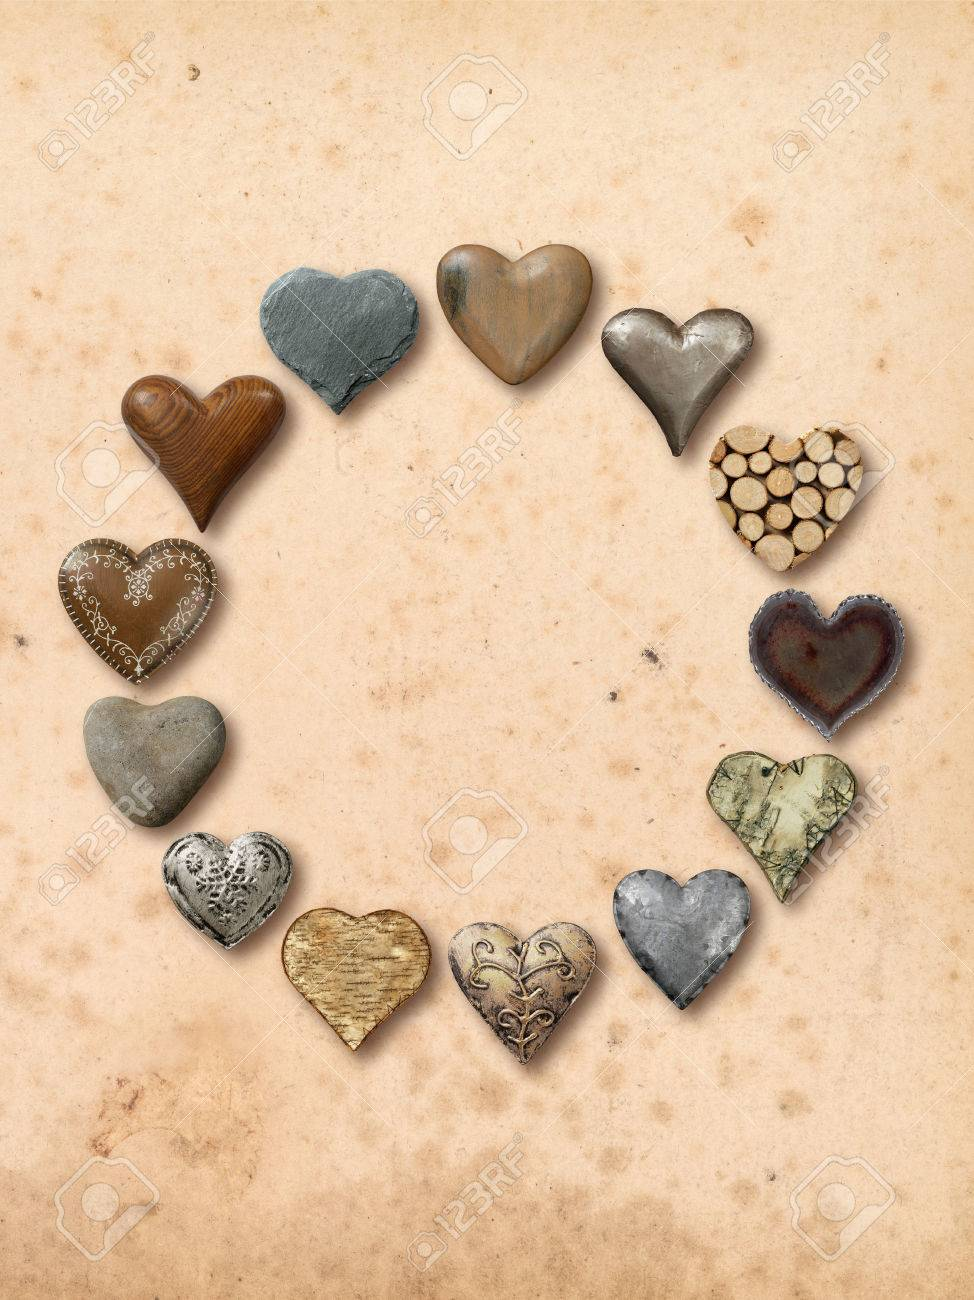 Photos Of Heart Shaped Things Made Stone Metal And Wood Assembled Into